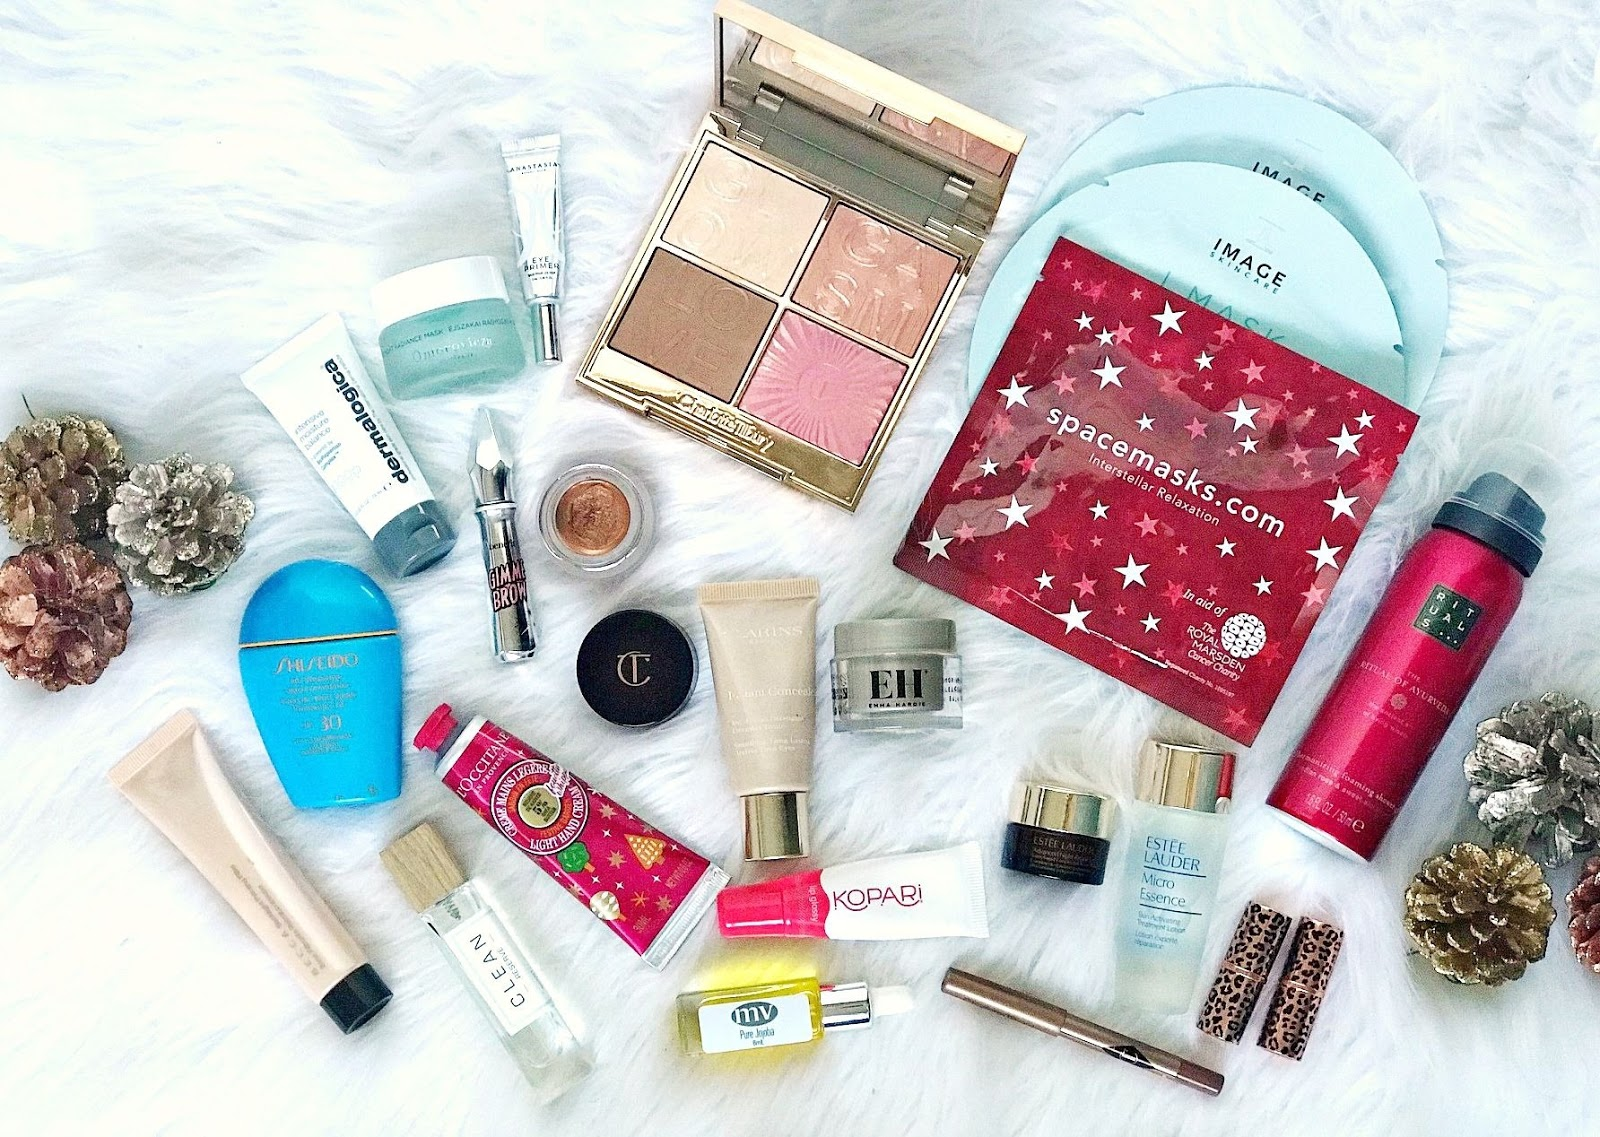 Hand luggage beauty picks for a winter trip to Rome!